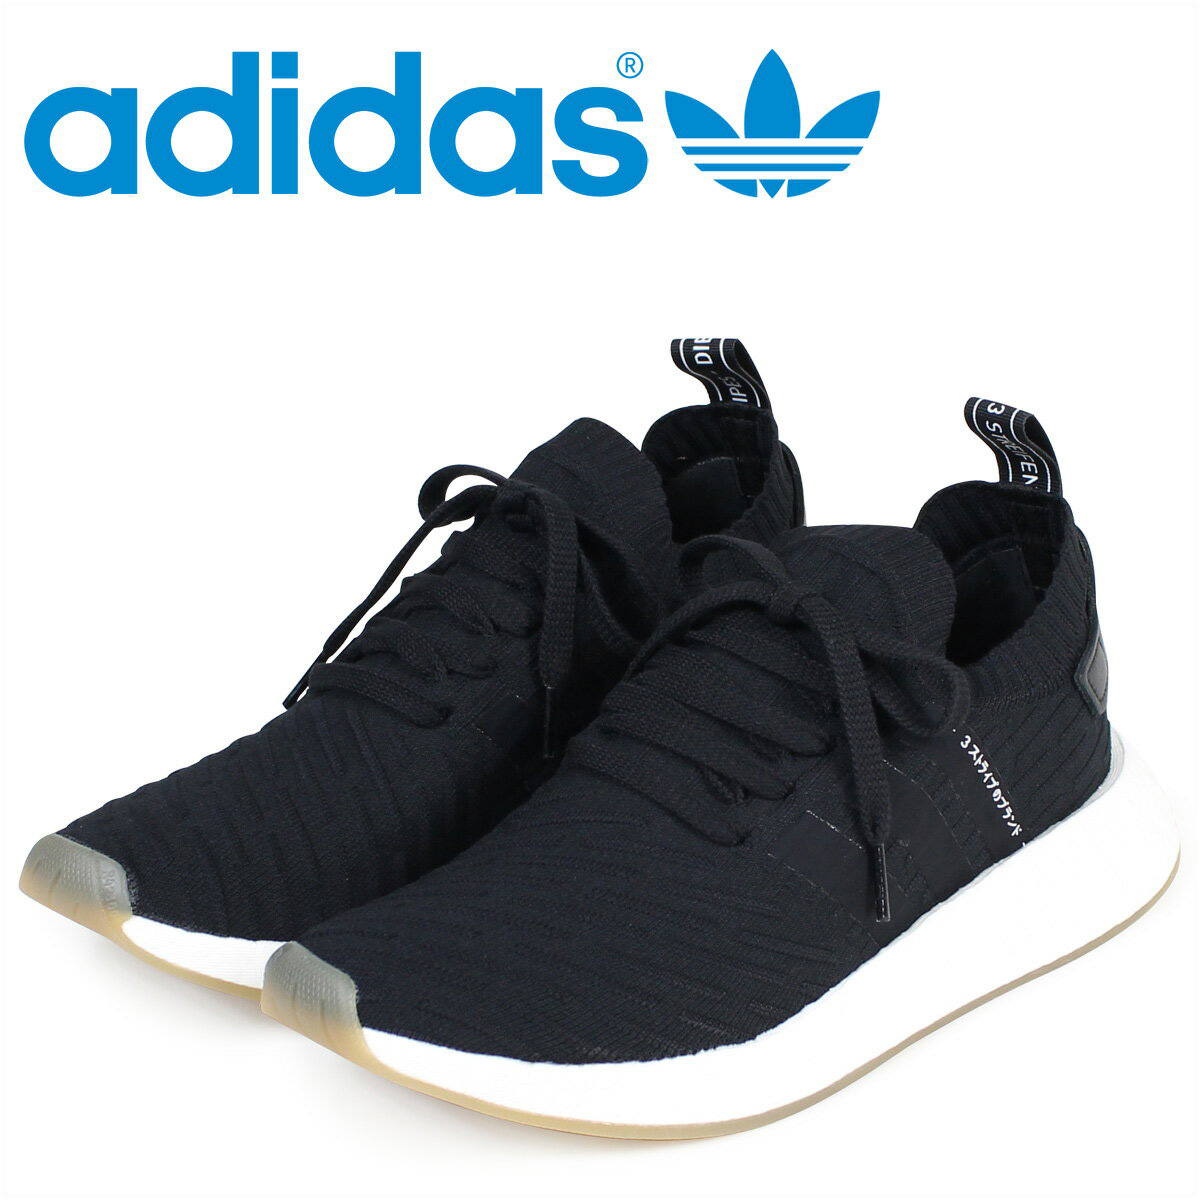 adidas NMD R1 PK Adidas originals sneakers nomad men BY9696 shoes black   10 28 Shinnyu load  2b98a81fe3dd